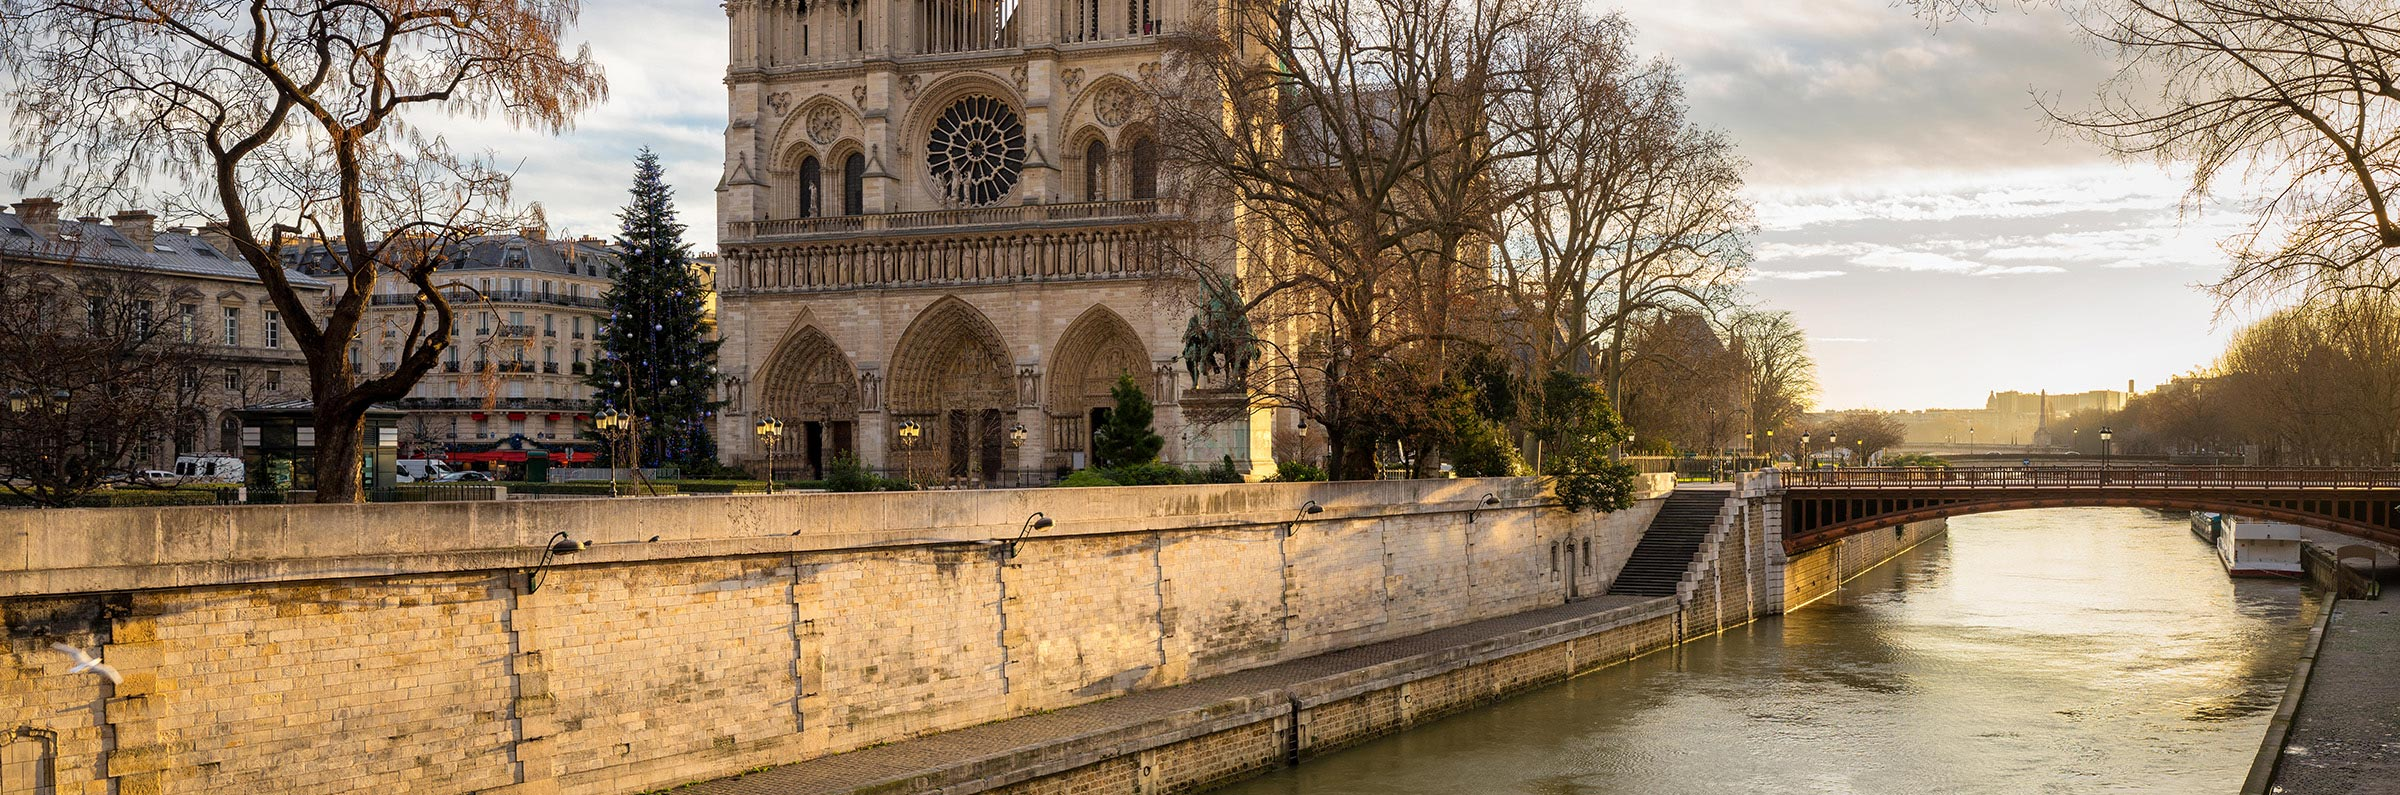 Sights and attractions in Paris